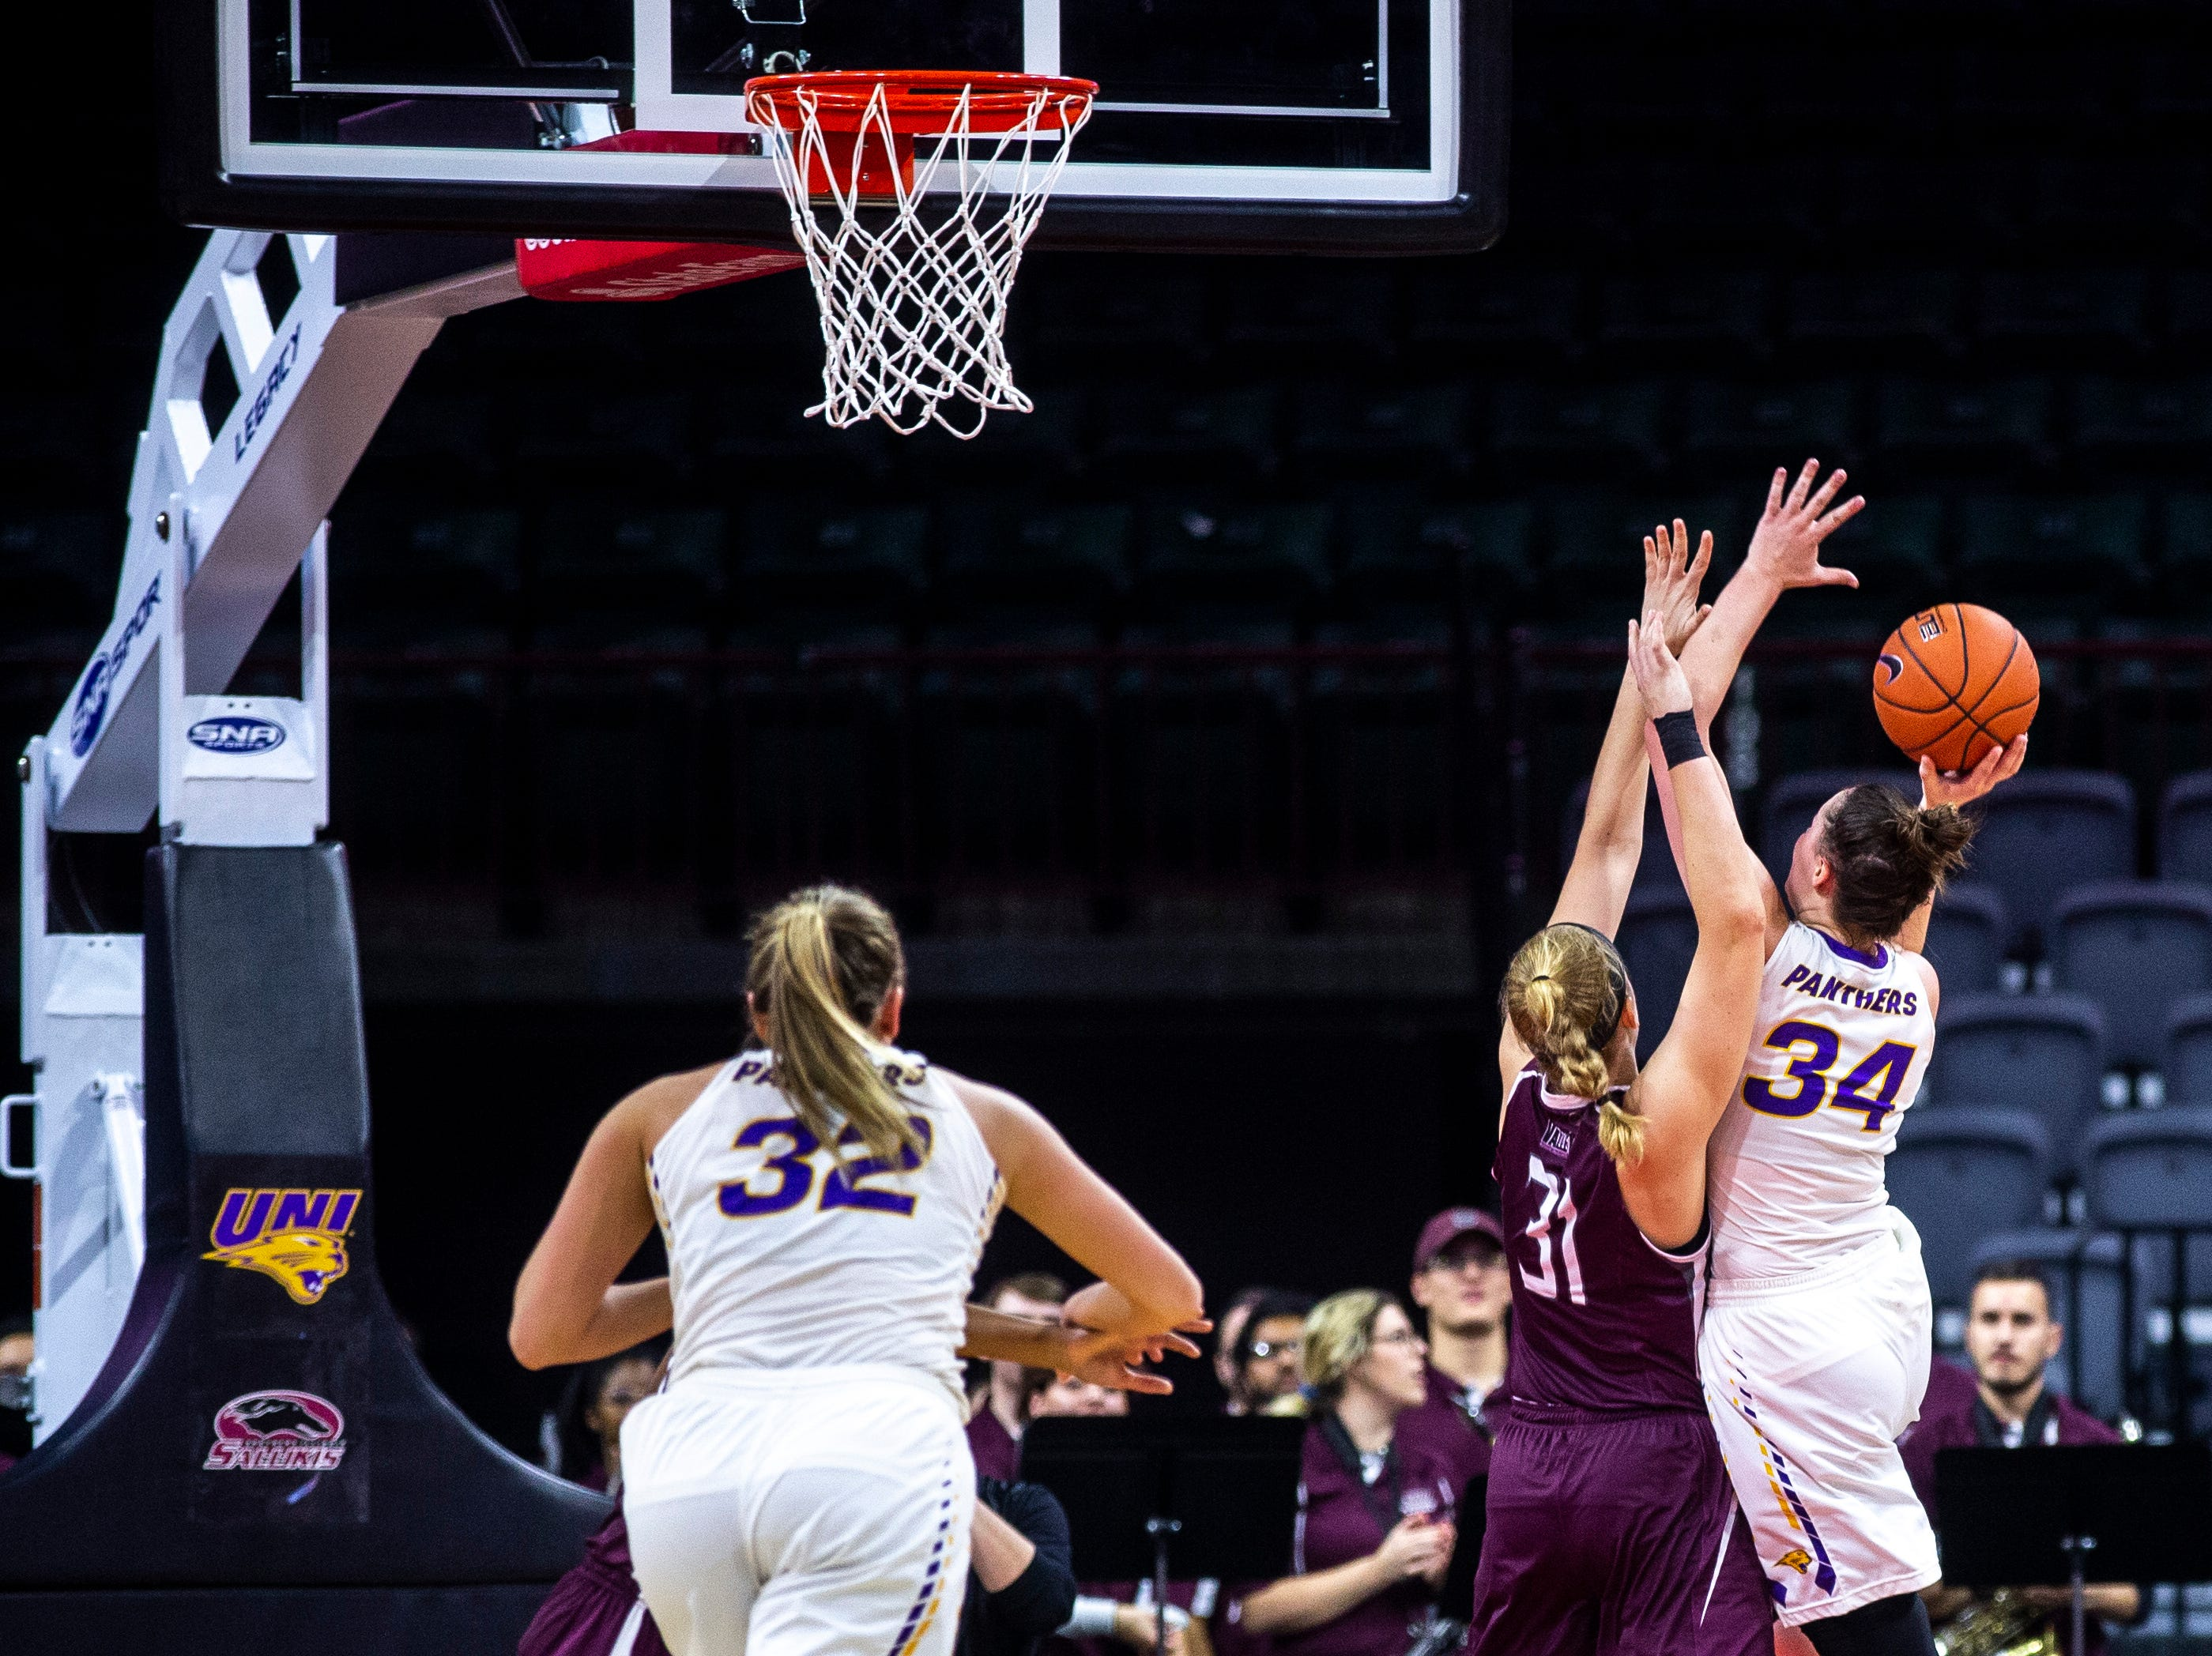 Northern Iowa forward Taylor Hagen (34) drives to the basket against Southern Illinois' Lauren Hartman (31) during a NCAA Missouri Valley Conference women's basketball quarterfinal tournament game, Friday, March 15, 2019, at the TaxSlayer Center in Moline, Illinois.